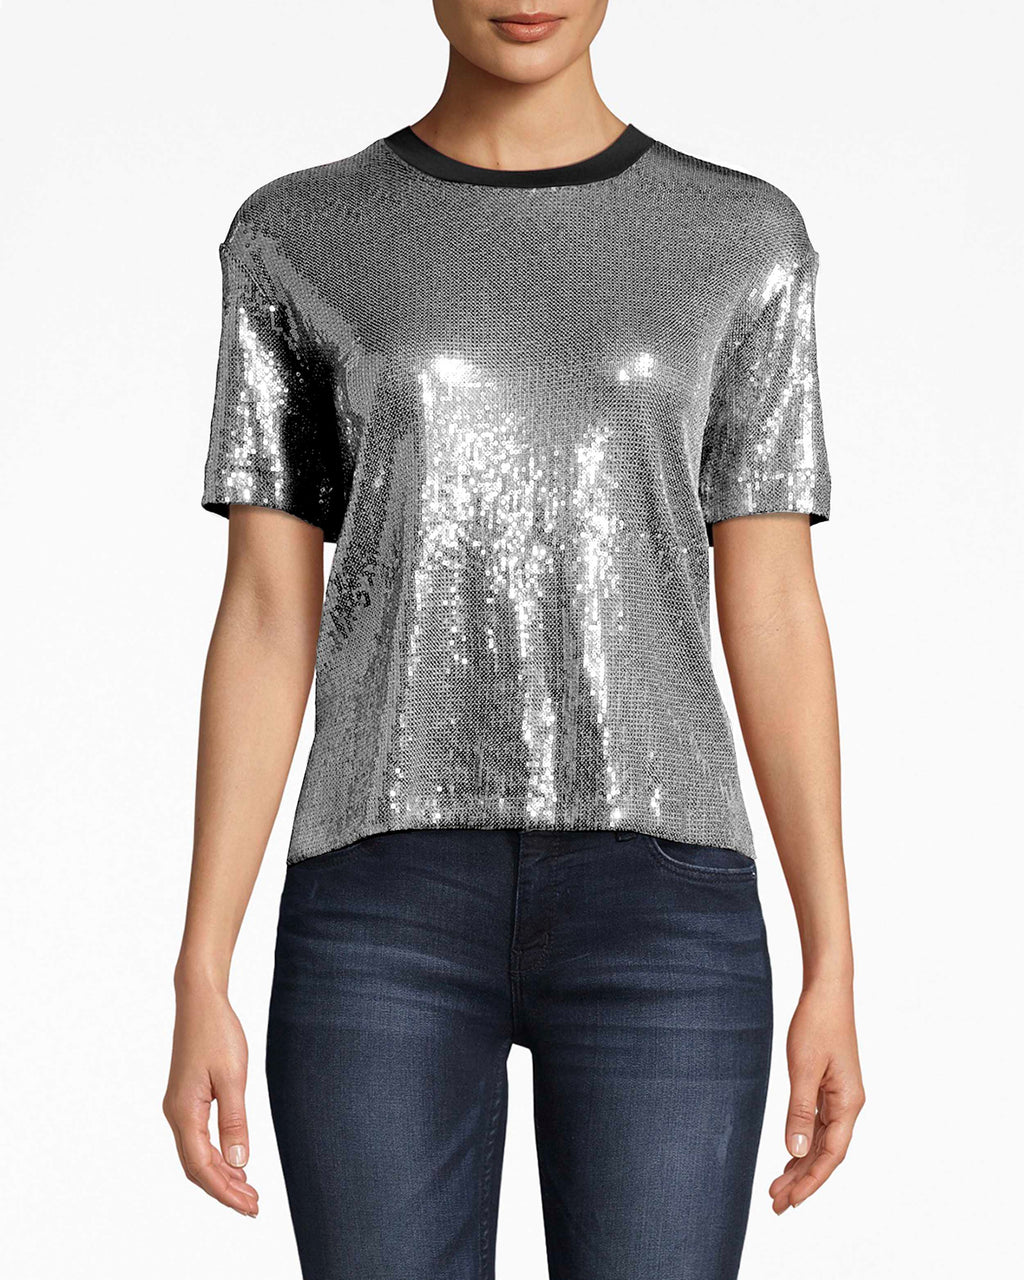 BA10164 - SEQUIN T-SHIRT - tops - shirts - Your jeans and t-shirt look just got party ready. Wear this high-low sequin t-shirt with dress pants or denim. The rounded, simple neckline balances everything out.